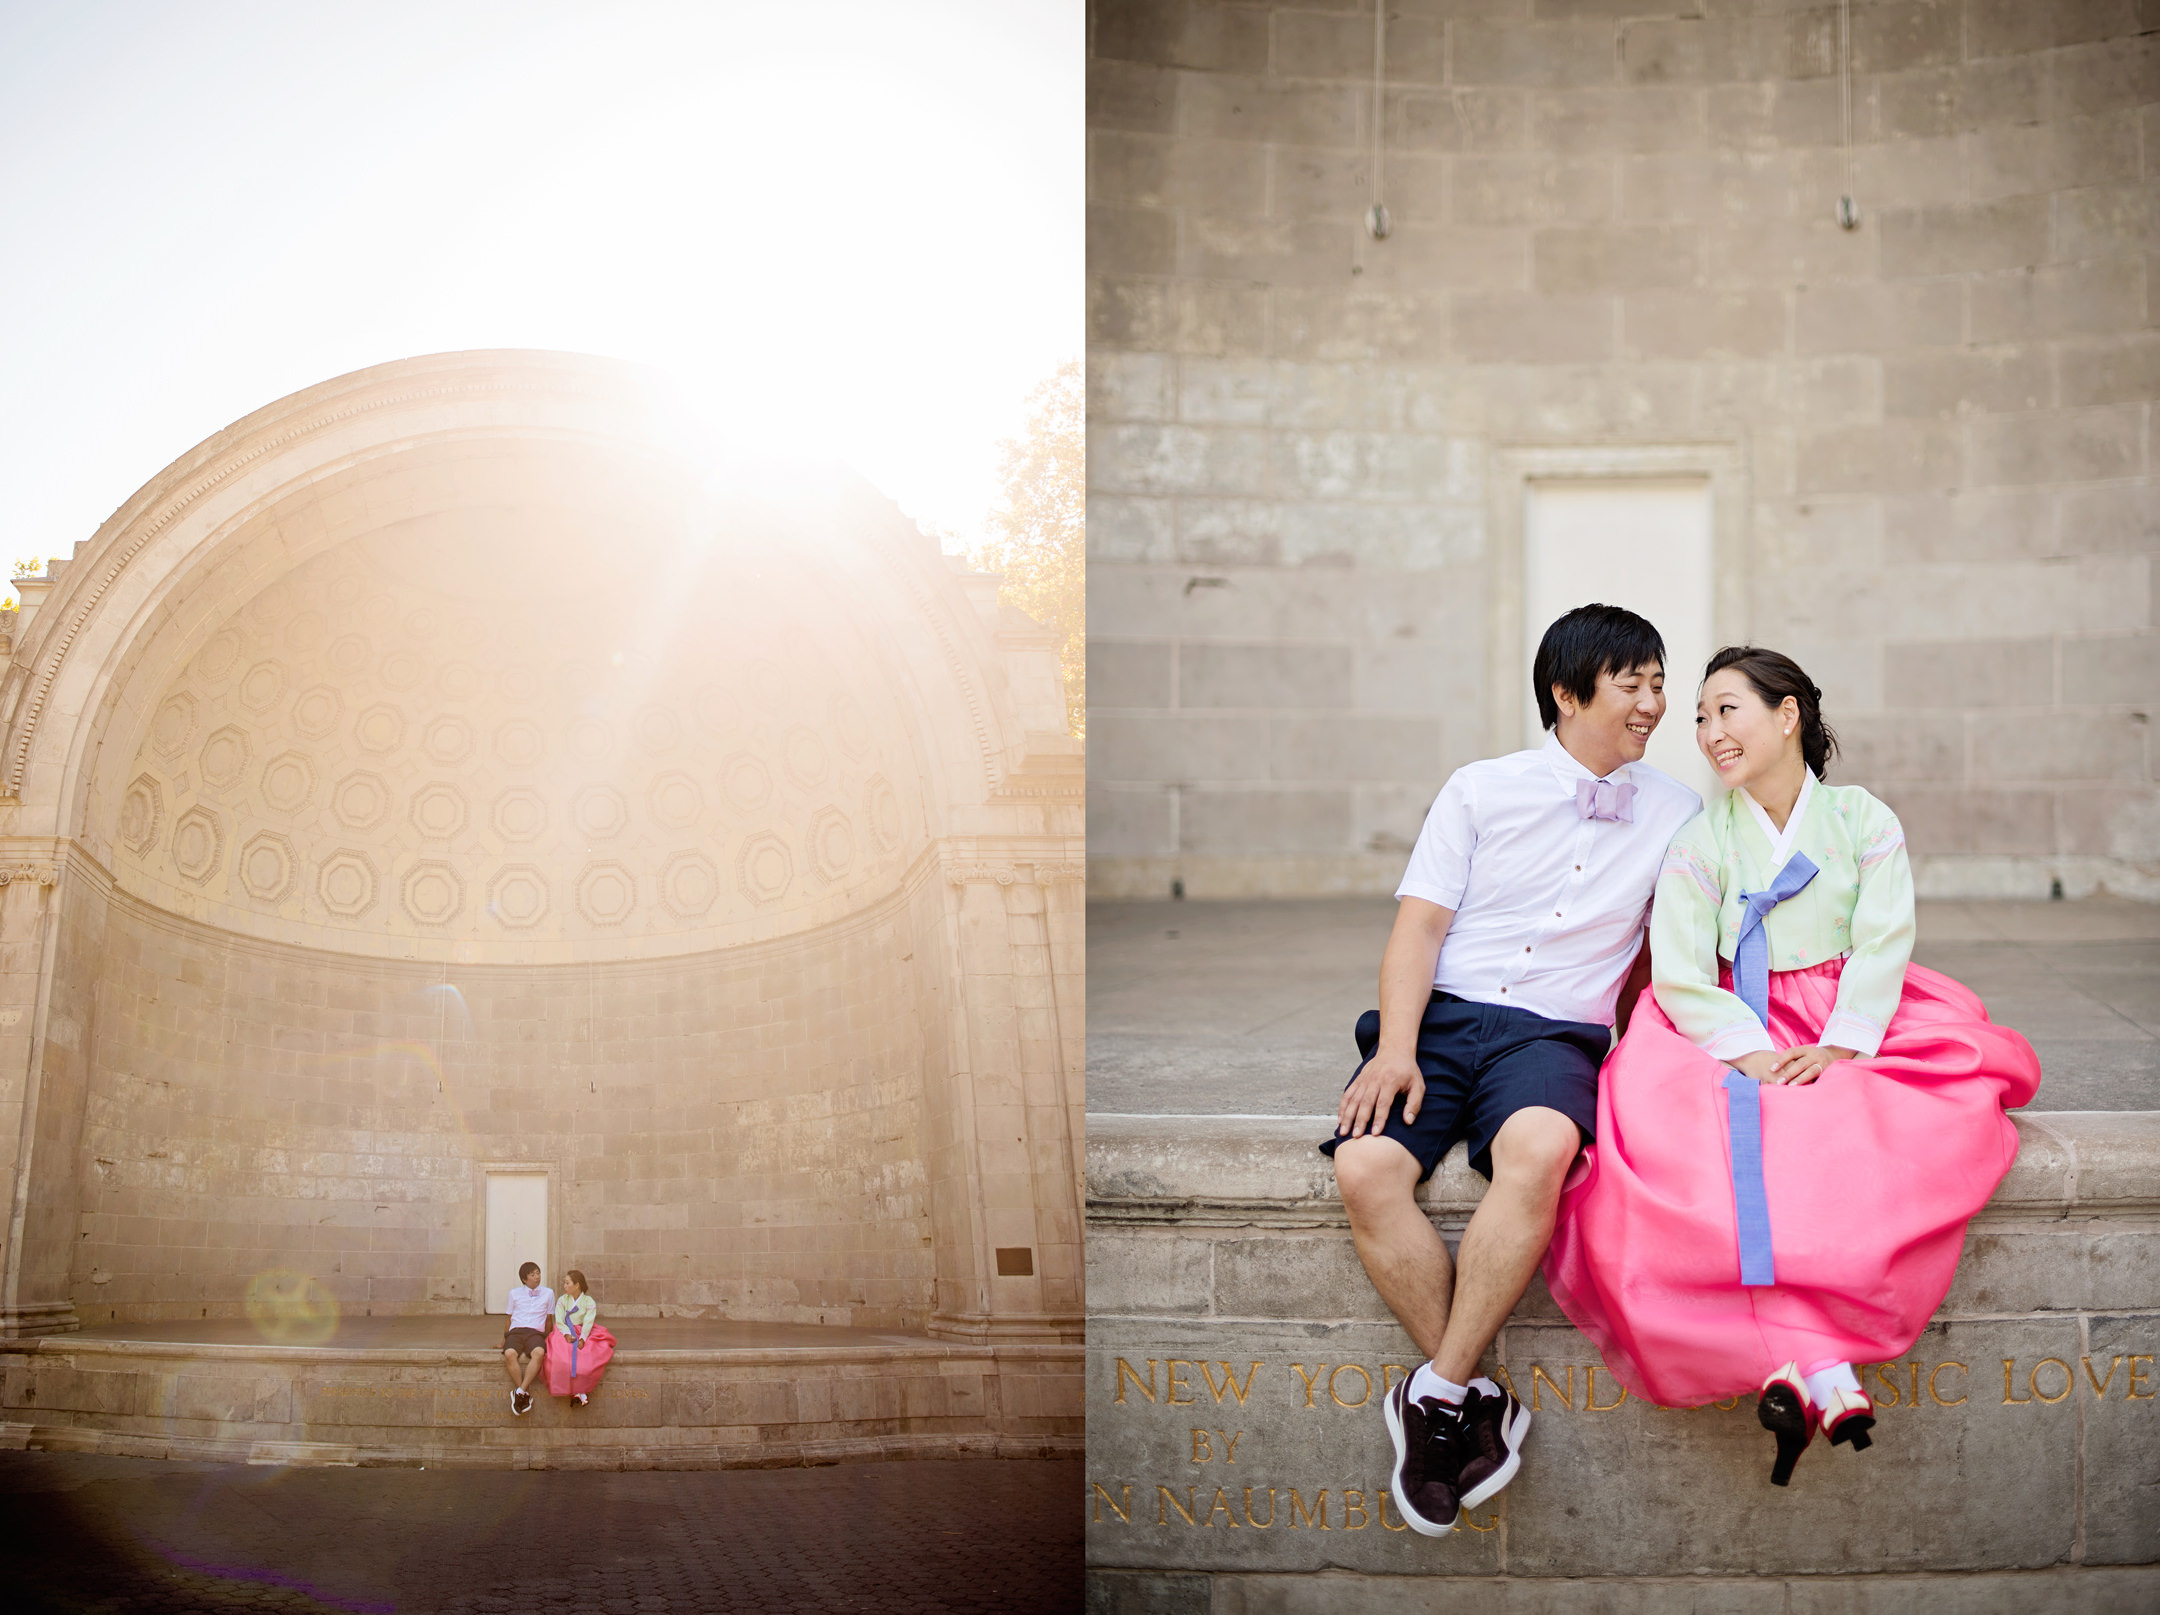 Chris_Hui_婚禮_婚紗照_pre_wedding_photography_best_033_.jpg